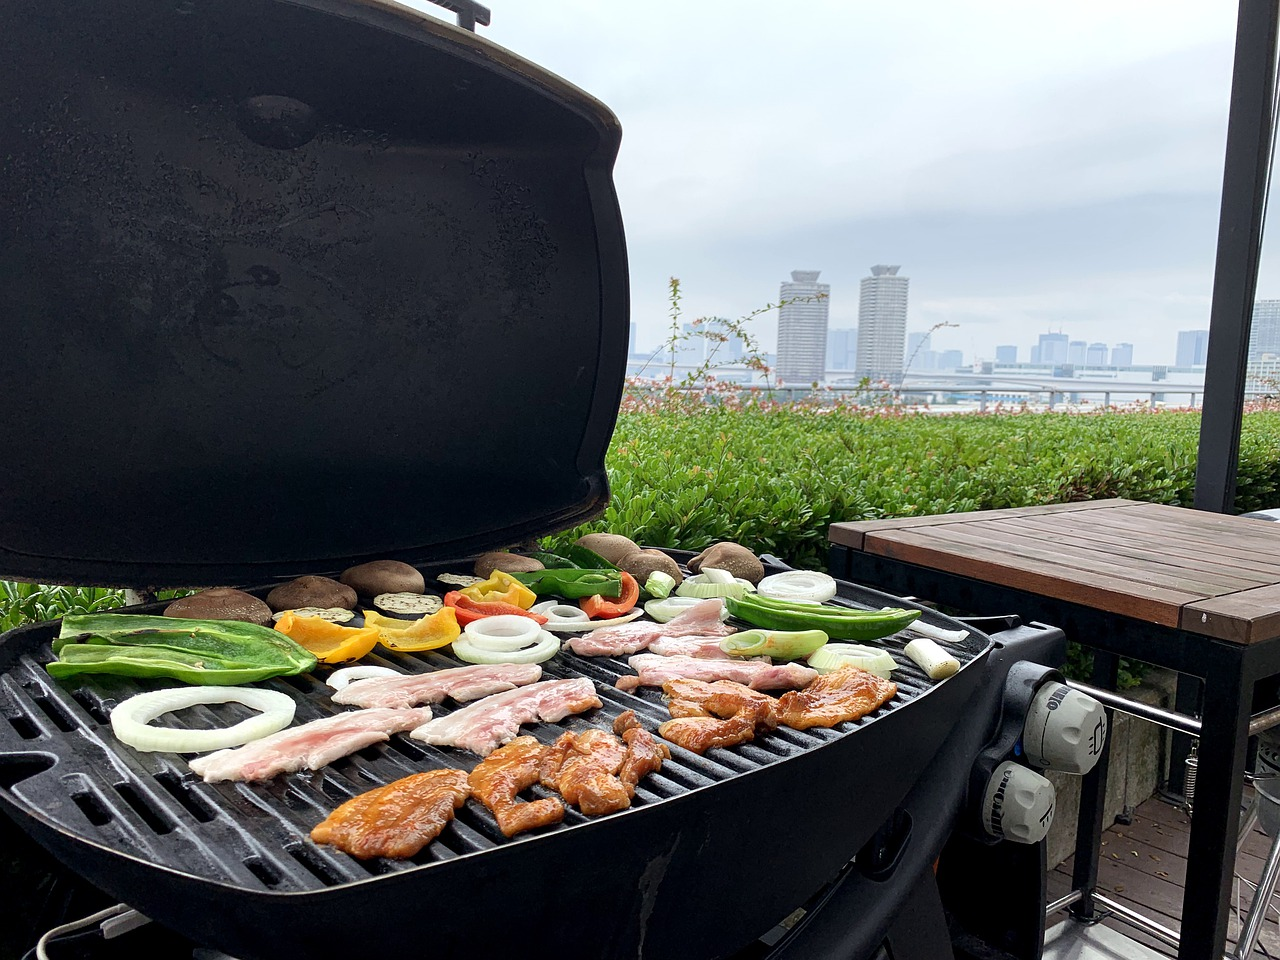 my grill gets wet